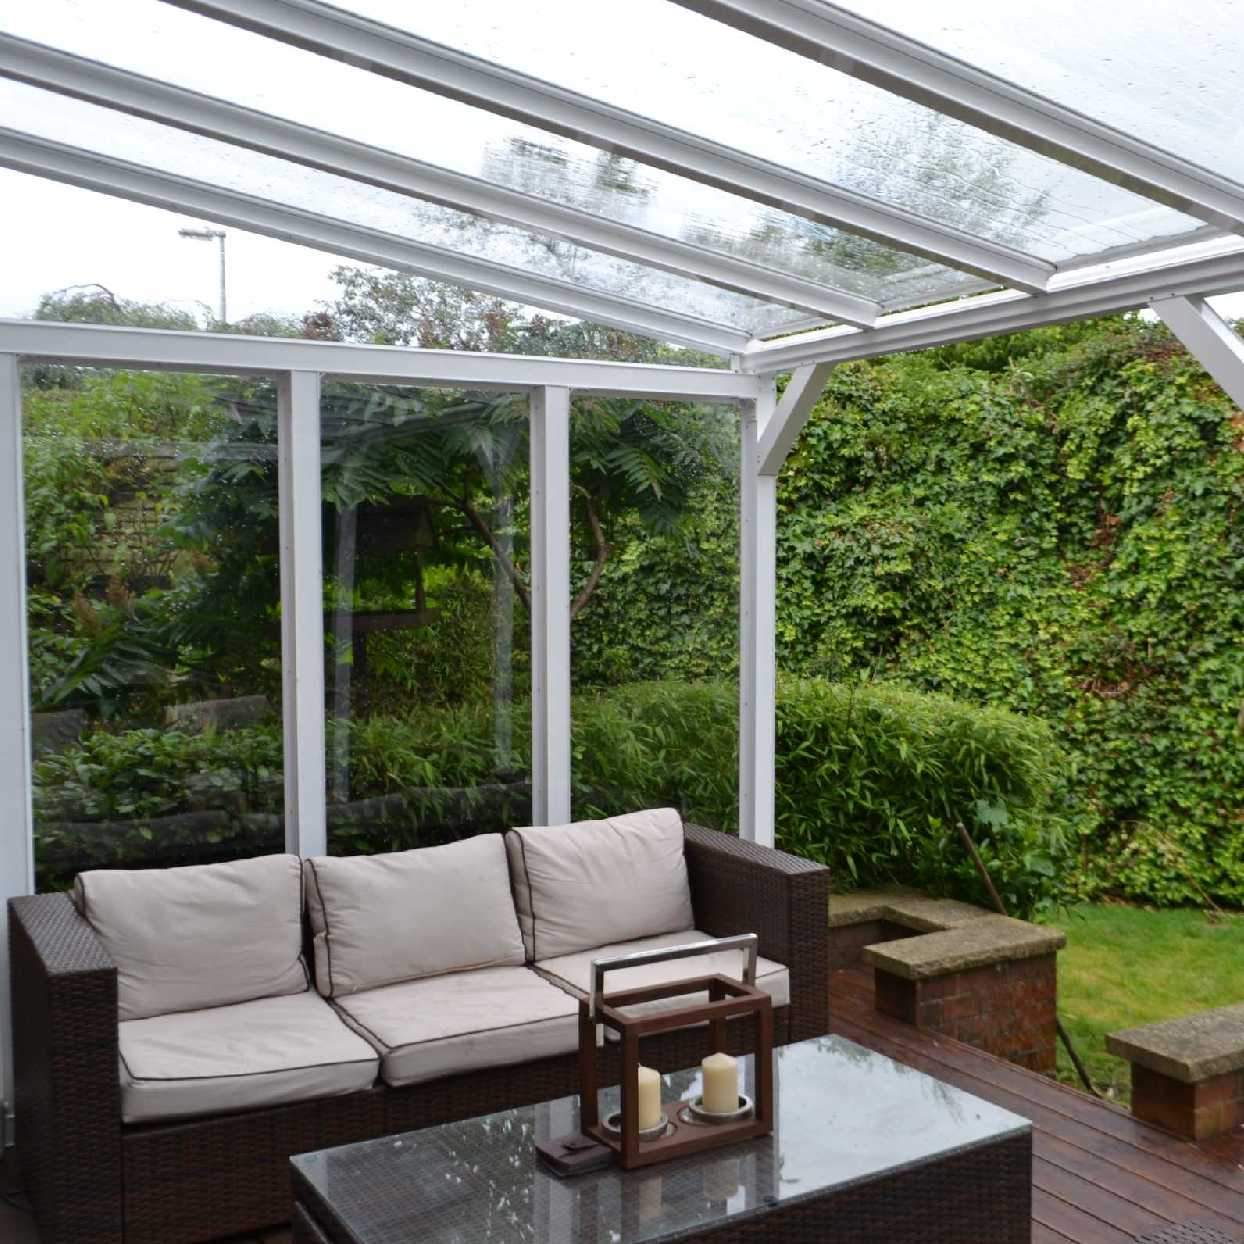 Omega Smart Lean-To Canopy with 6mm Glass Clear Plate Polycarbonate Glazing - 6.3m (W) x 2.0m (P), (4) Supporting Posts